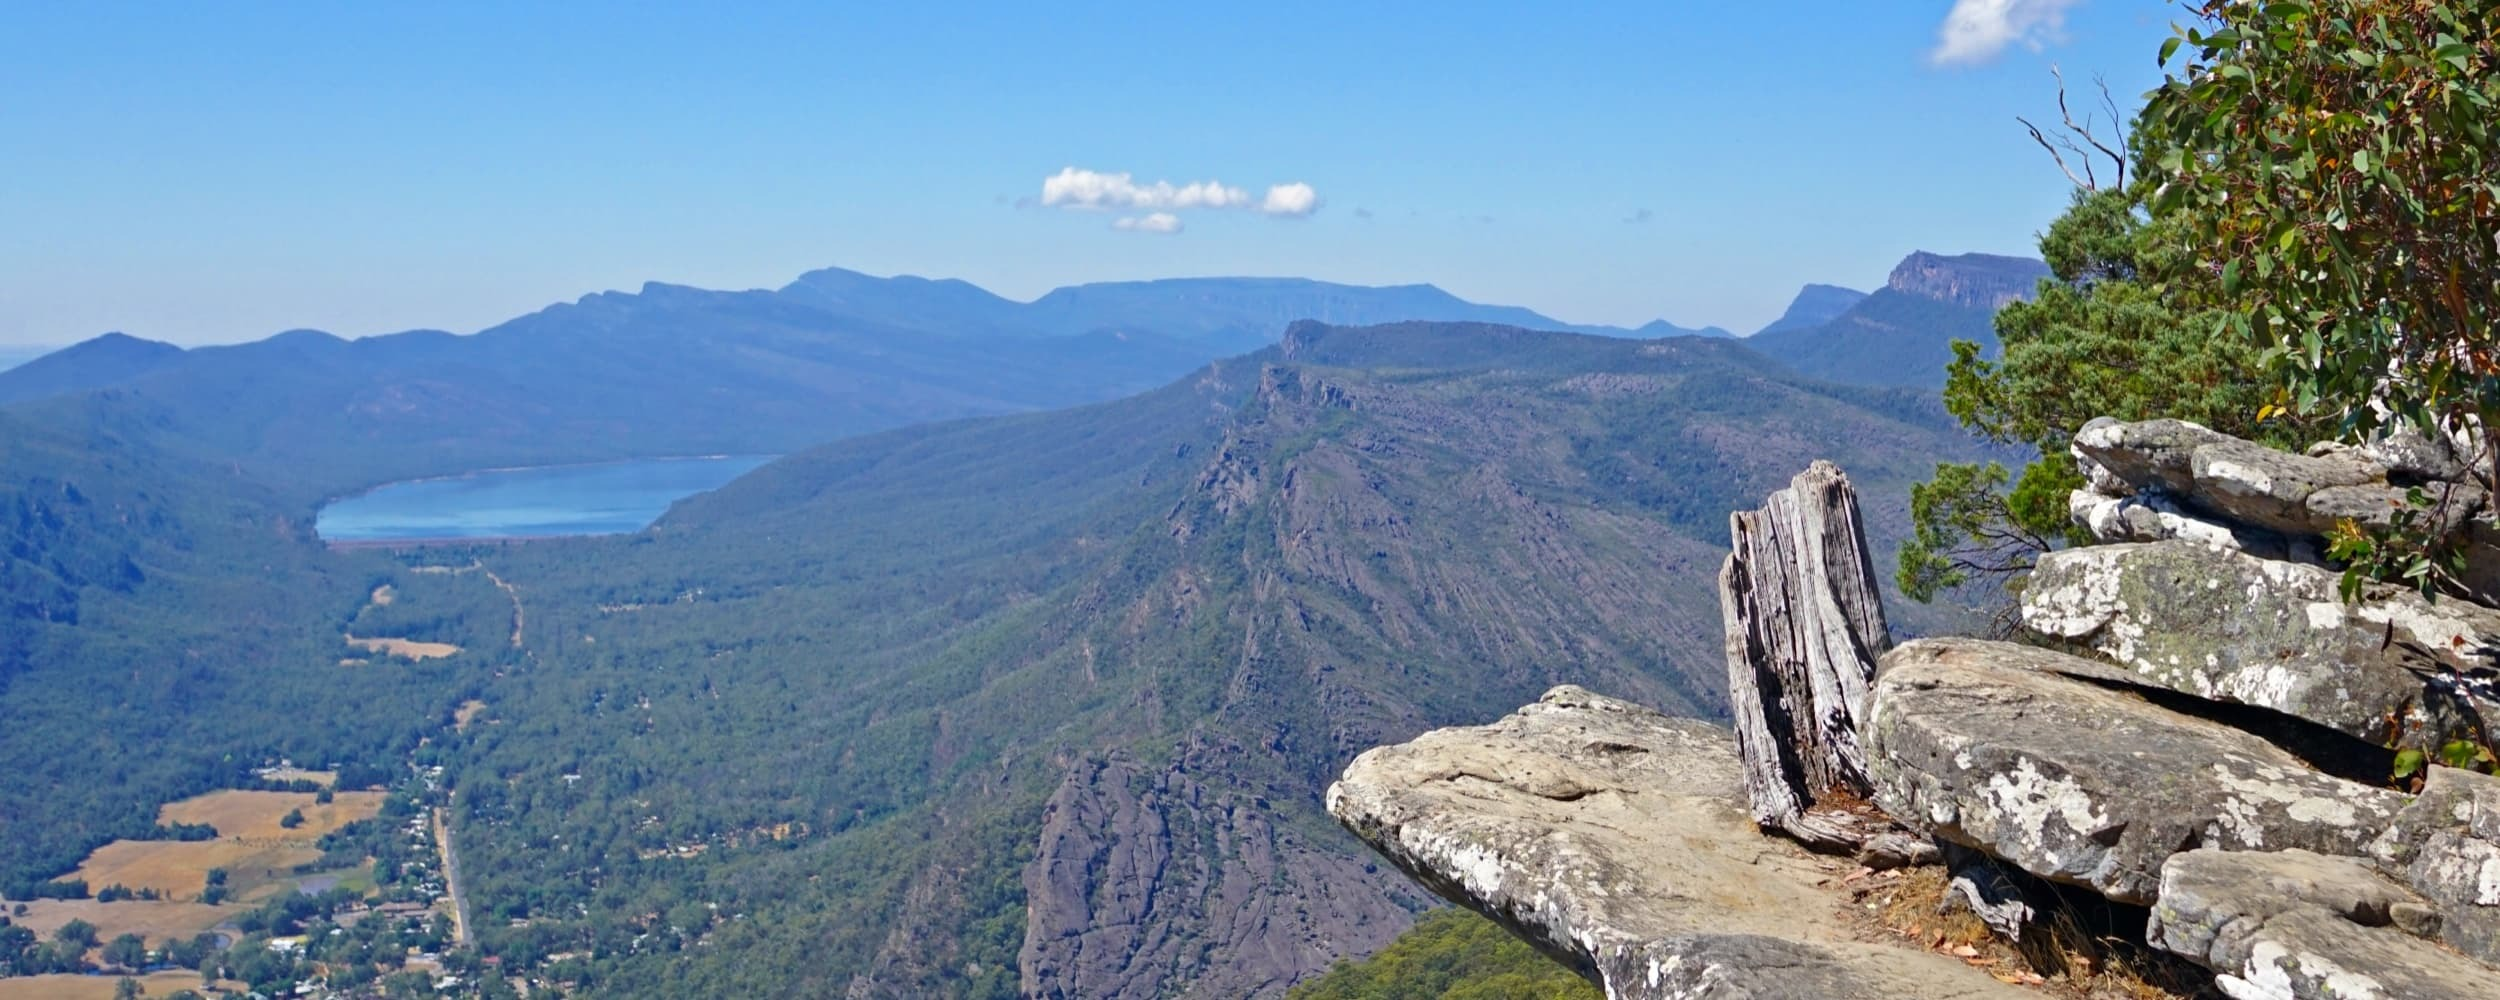 Venture into the rugged mountain ranges of the Grampians with the Trooper